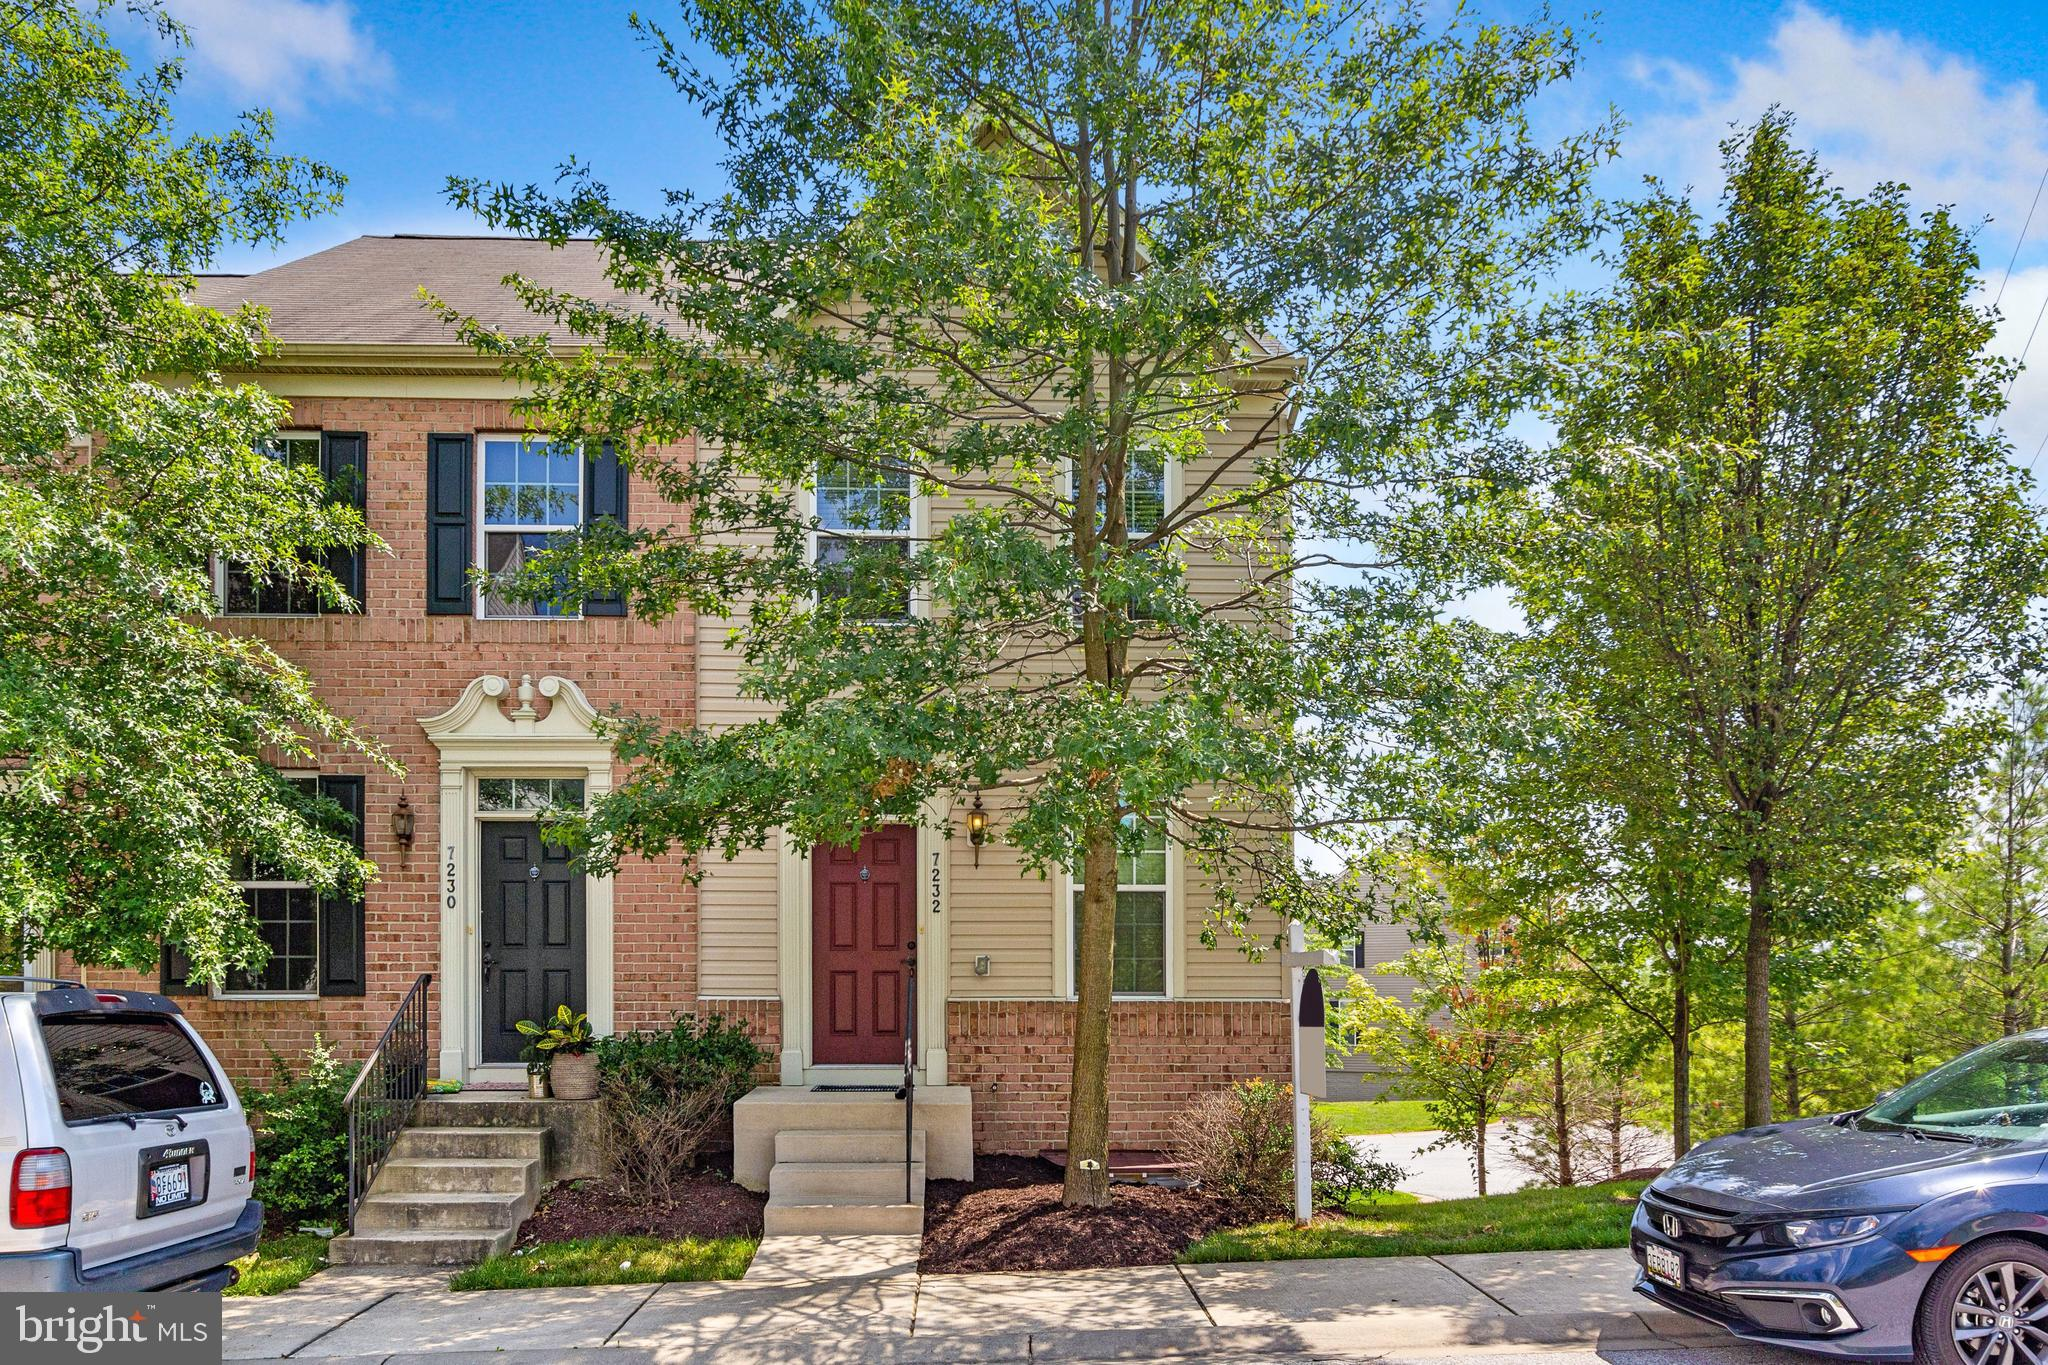 Well maintained end of group 2 bedroom, 2.5 bath and 1 car garage town home in the sought-after Howard Square Community. Main level features gleaming hardwood floors, living room, dining room, upgraded kitchen with granite counter tops, center island, stainless steel appliances and large maintenance free deck off of the kitchen. Upper level has large master bedroom with private master bath and spacious second bedroom and a second full bath. Lower level is fully finished with family room, powder room and access to the attached rear garage. This home is Conveniently located close to major commuter routes, I-95, Rt-100, 295, shopping, dining and entertainment. Don't miss this great opportunity!